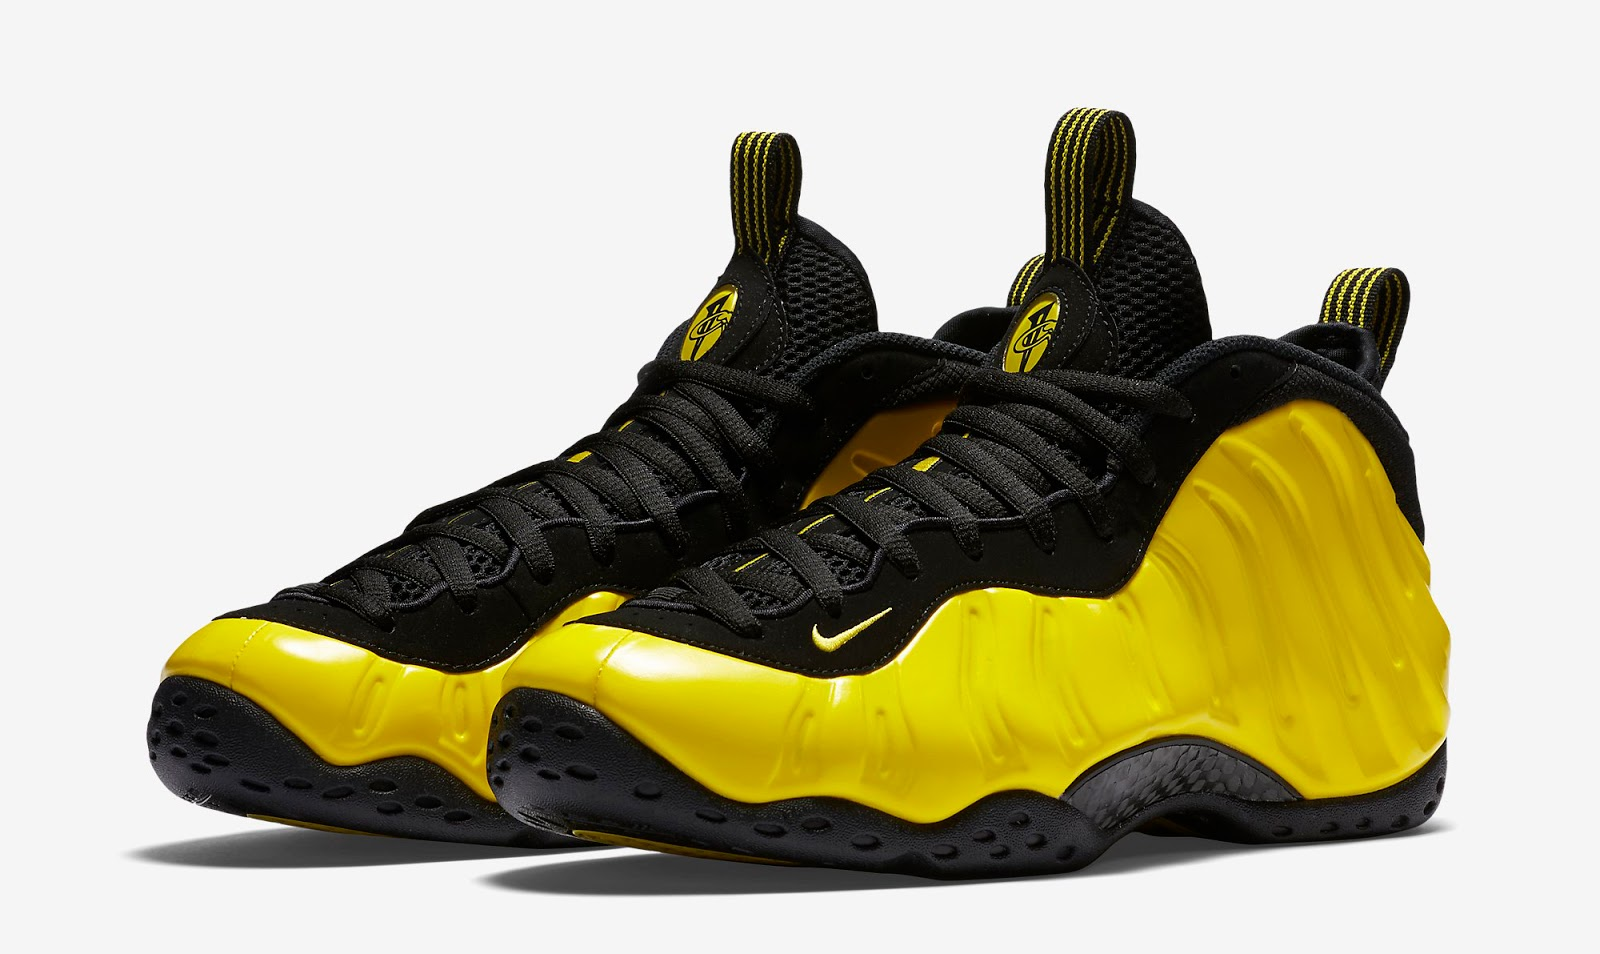 best sneakers c58ee 59db9 The latest colorway of the Nike Air Foamposite One hits stores this weekend.